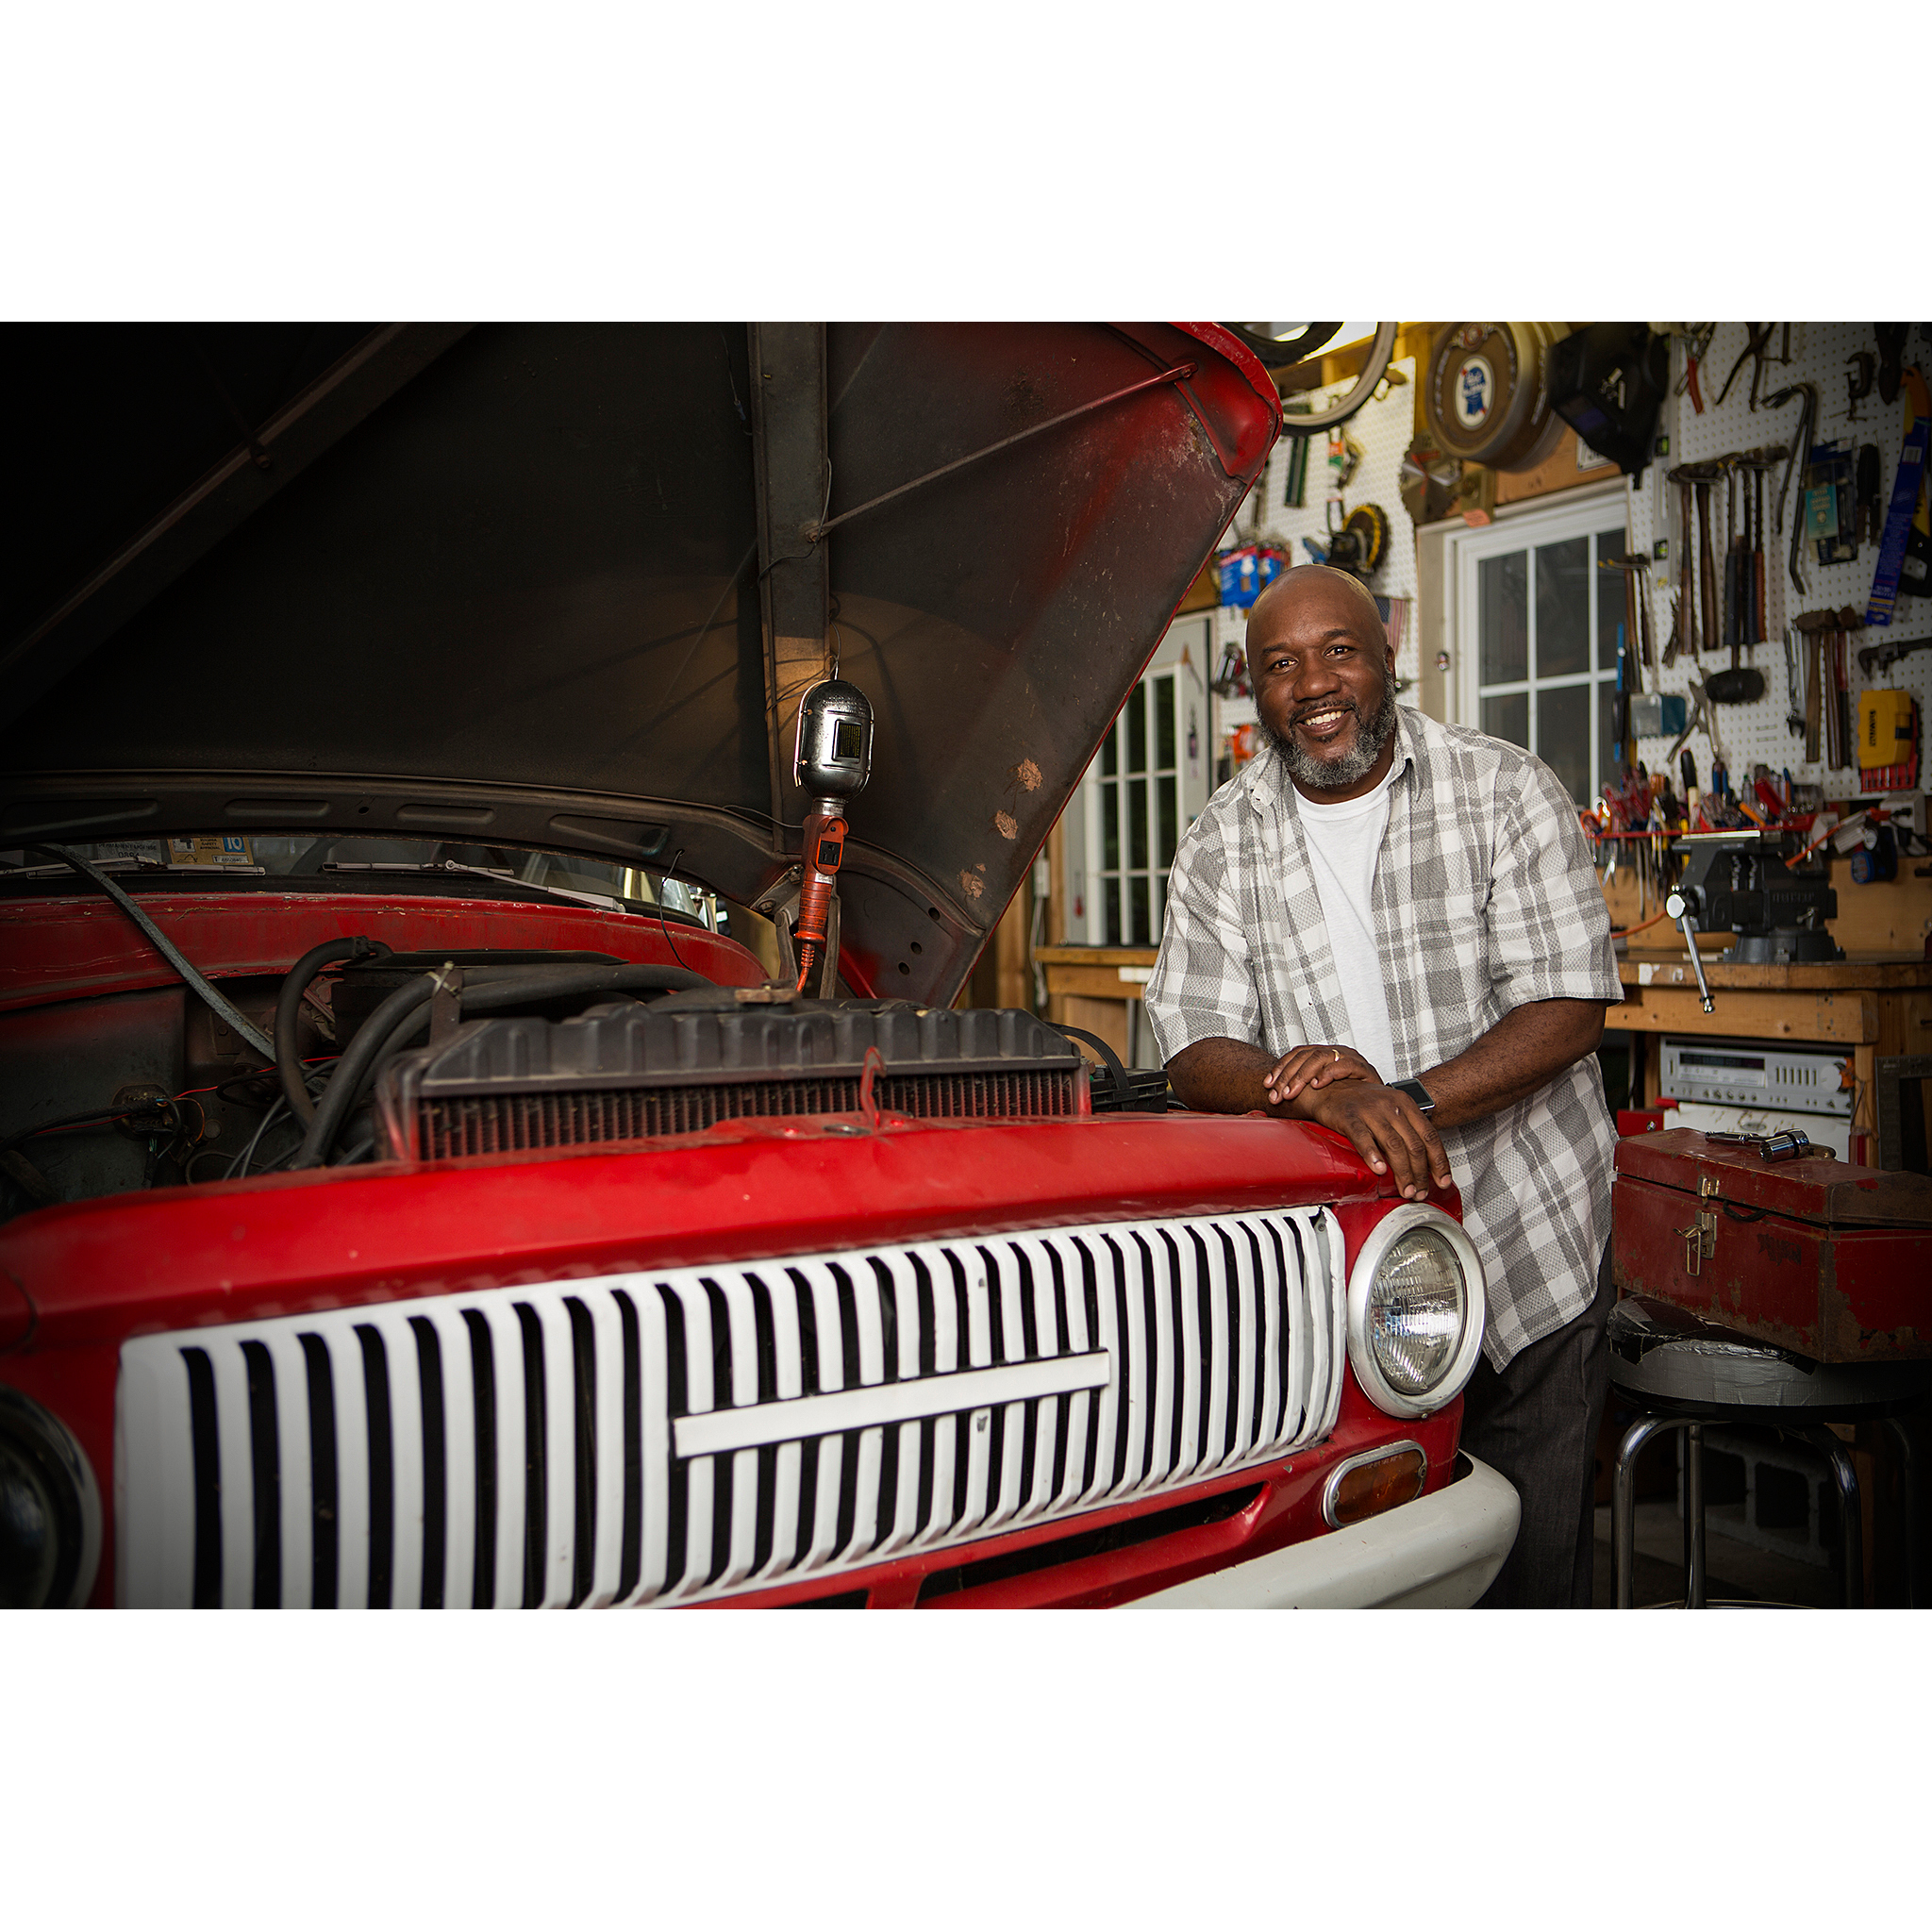 Portrait of DIY mechanic man working on old red truck in garage for billboard ad